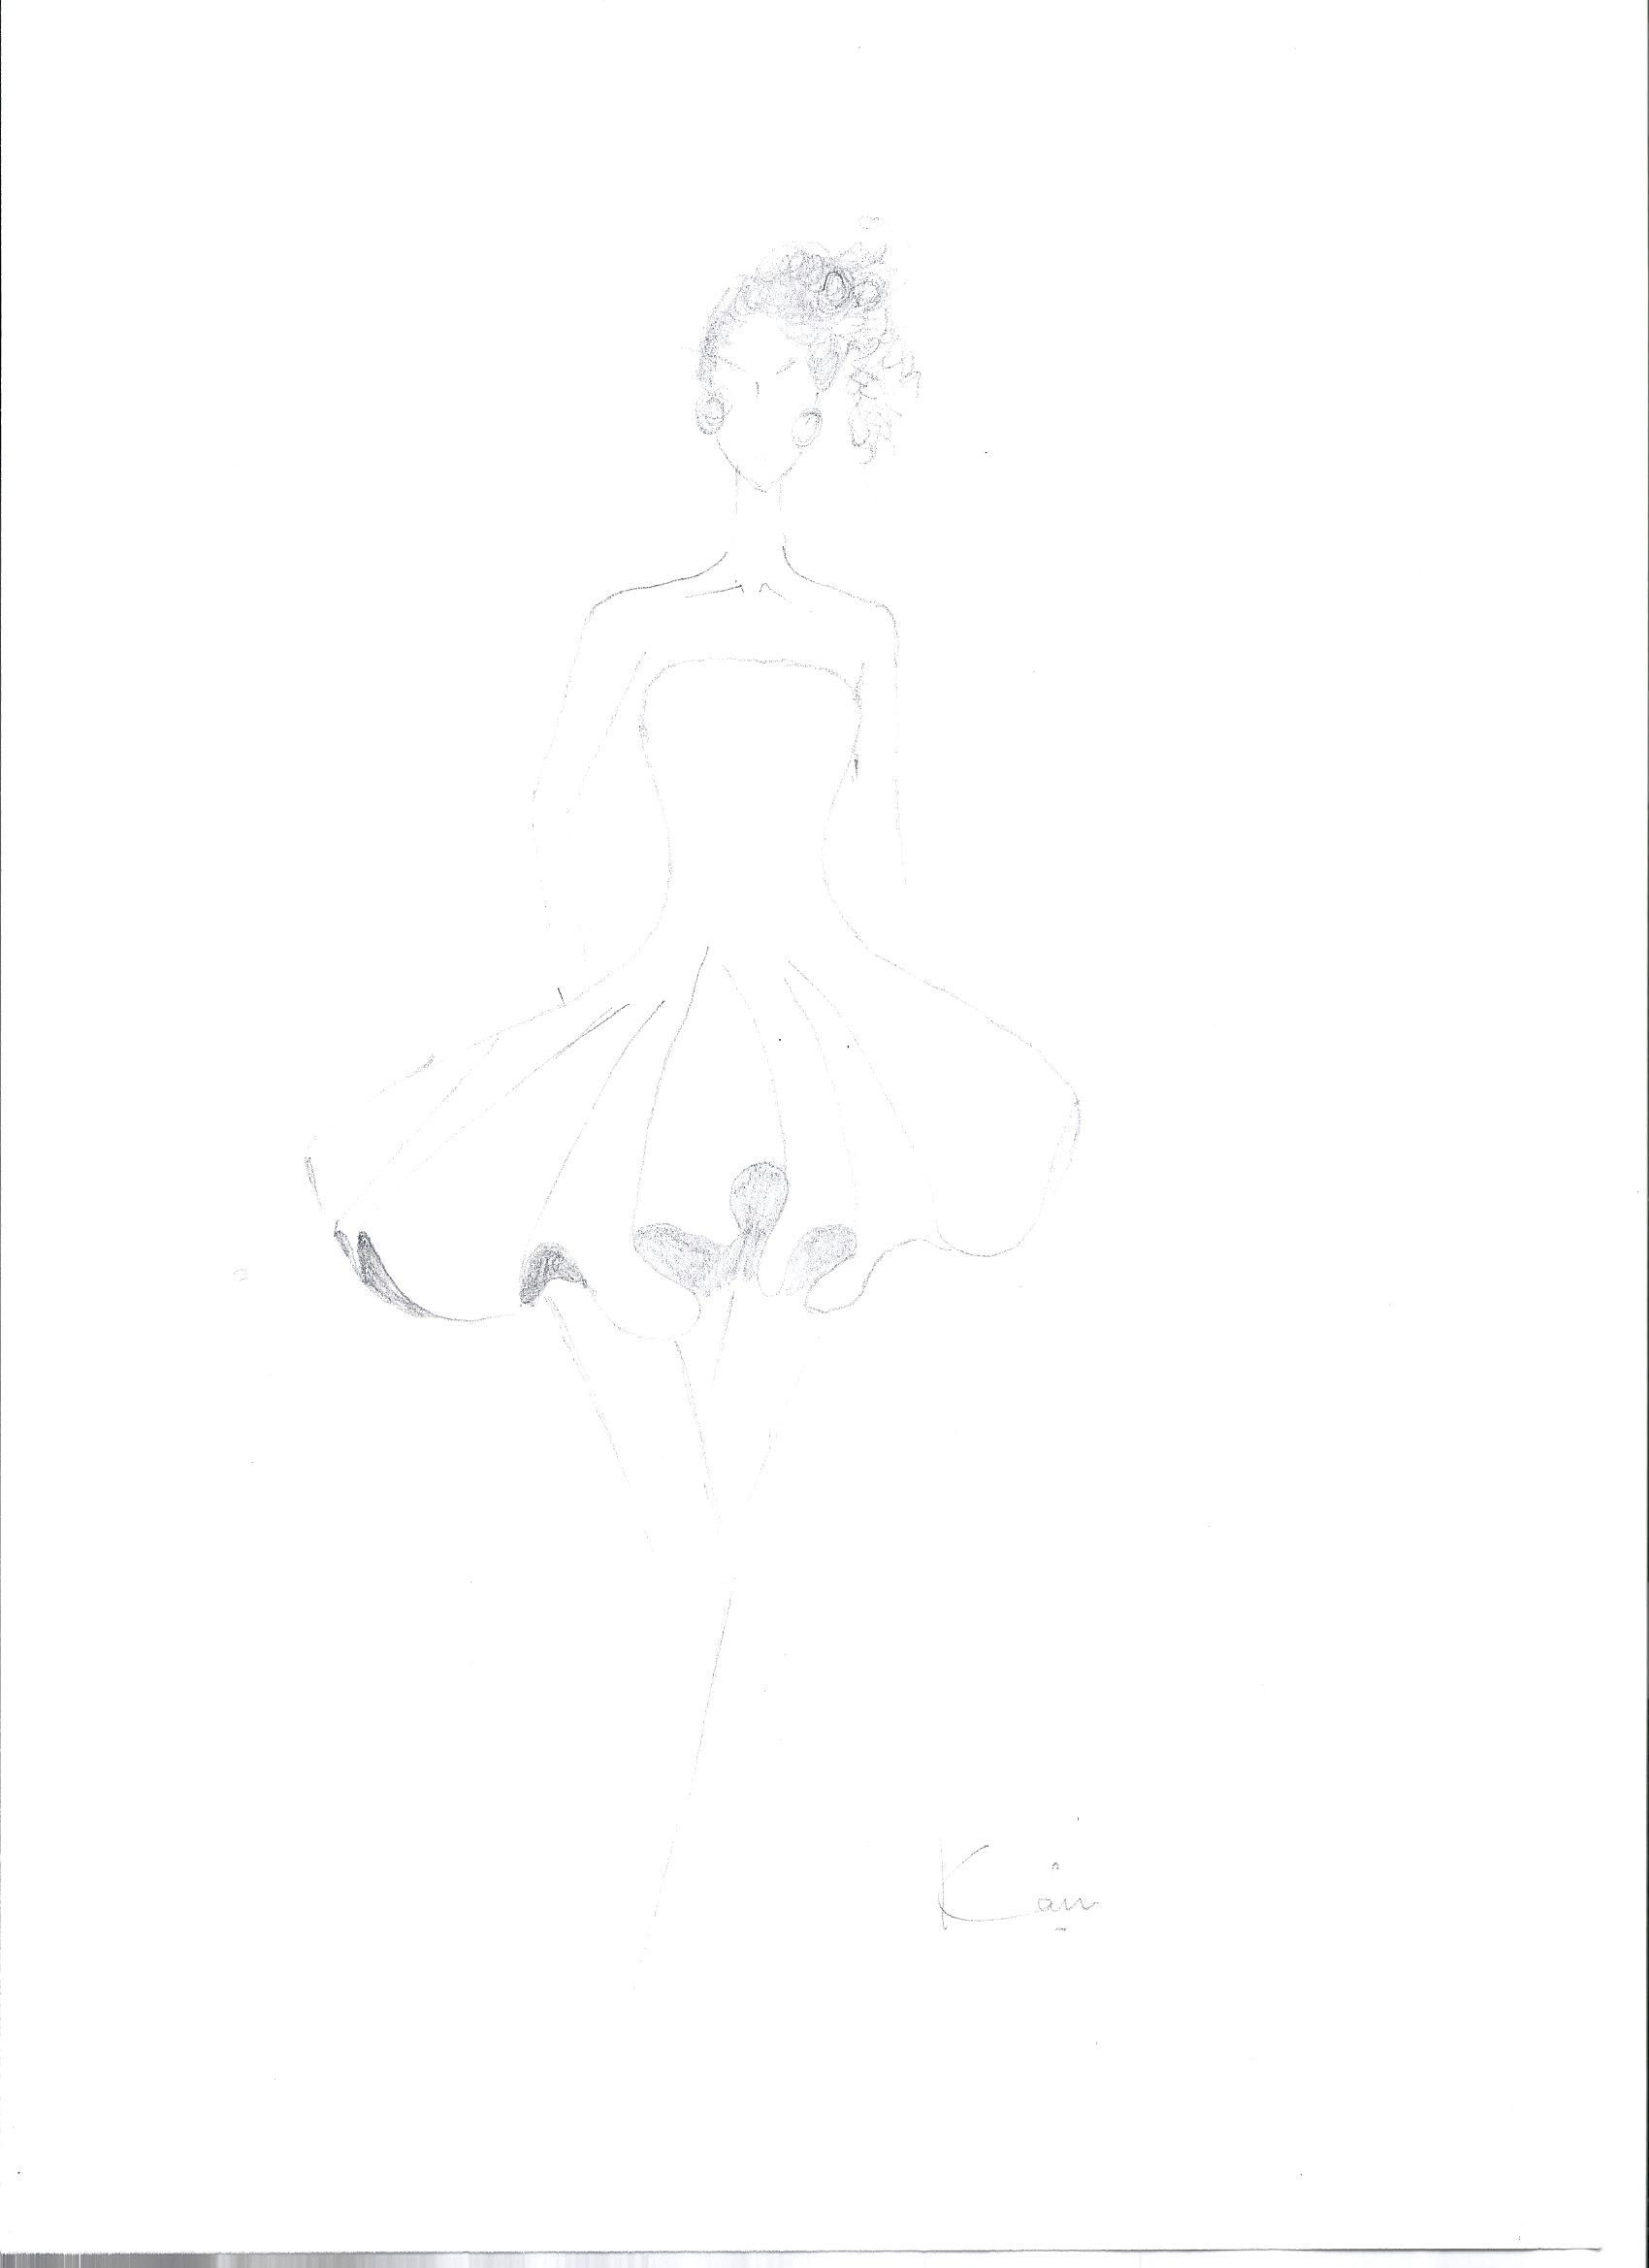 SKETCH-My Muse - image 2 - student project